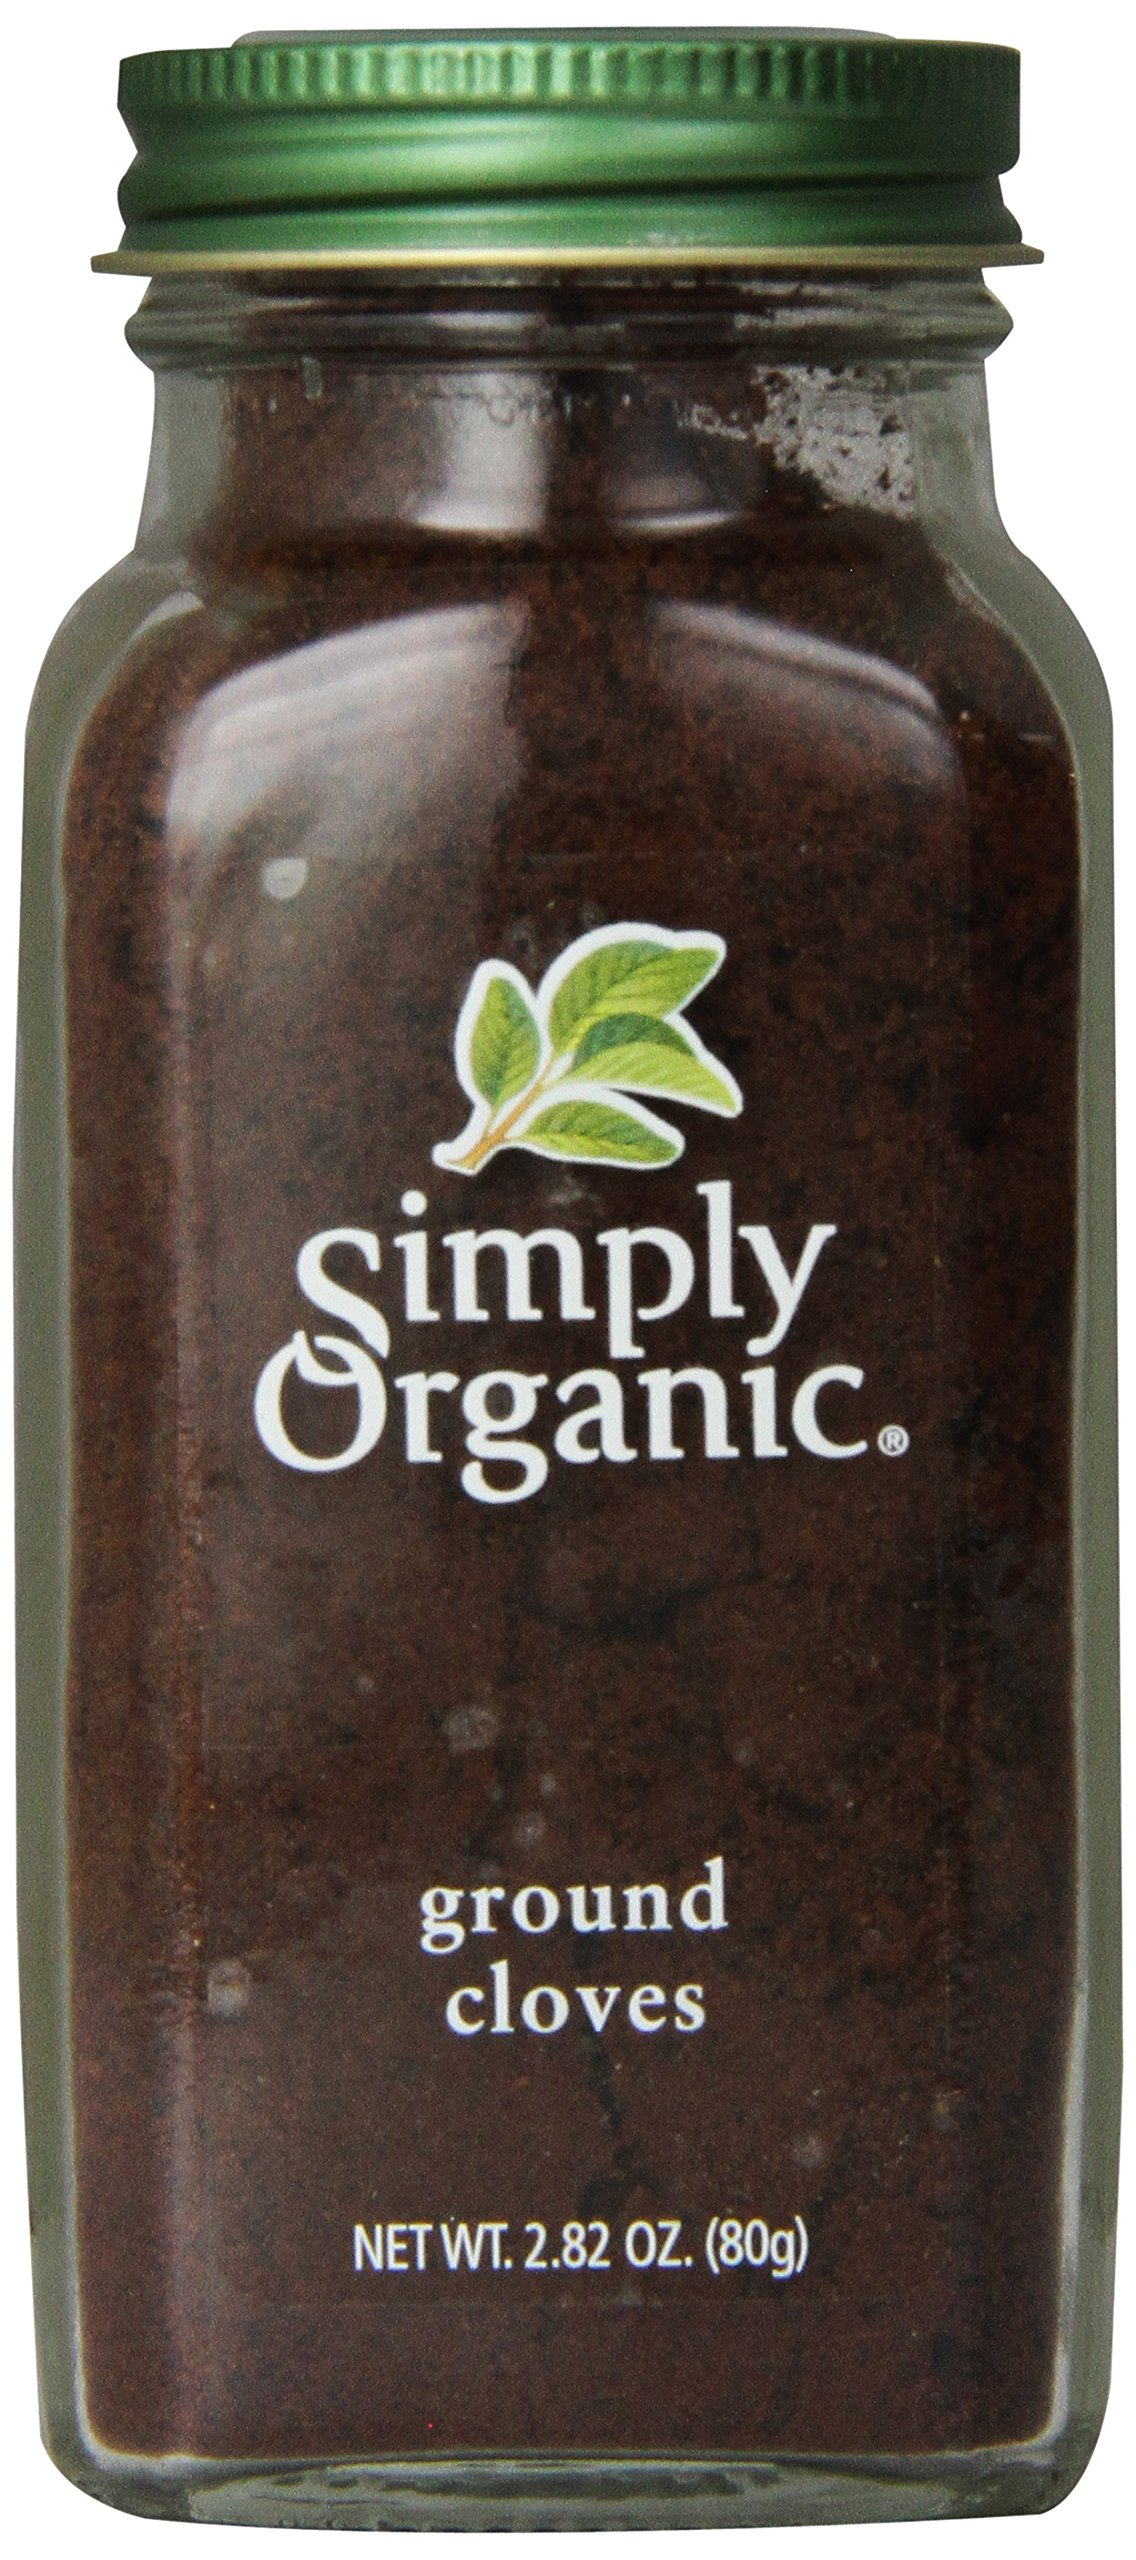 Simply Organic Cloves Ground Certified Organic, 2.82-Ounce Container